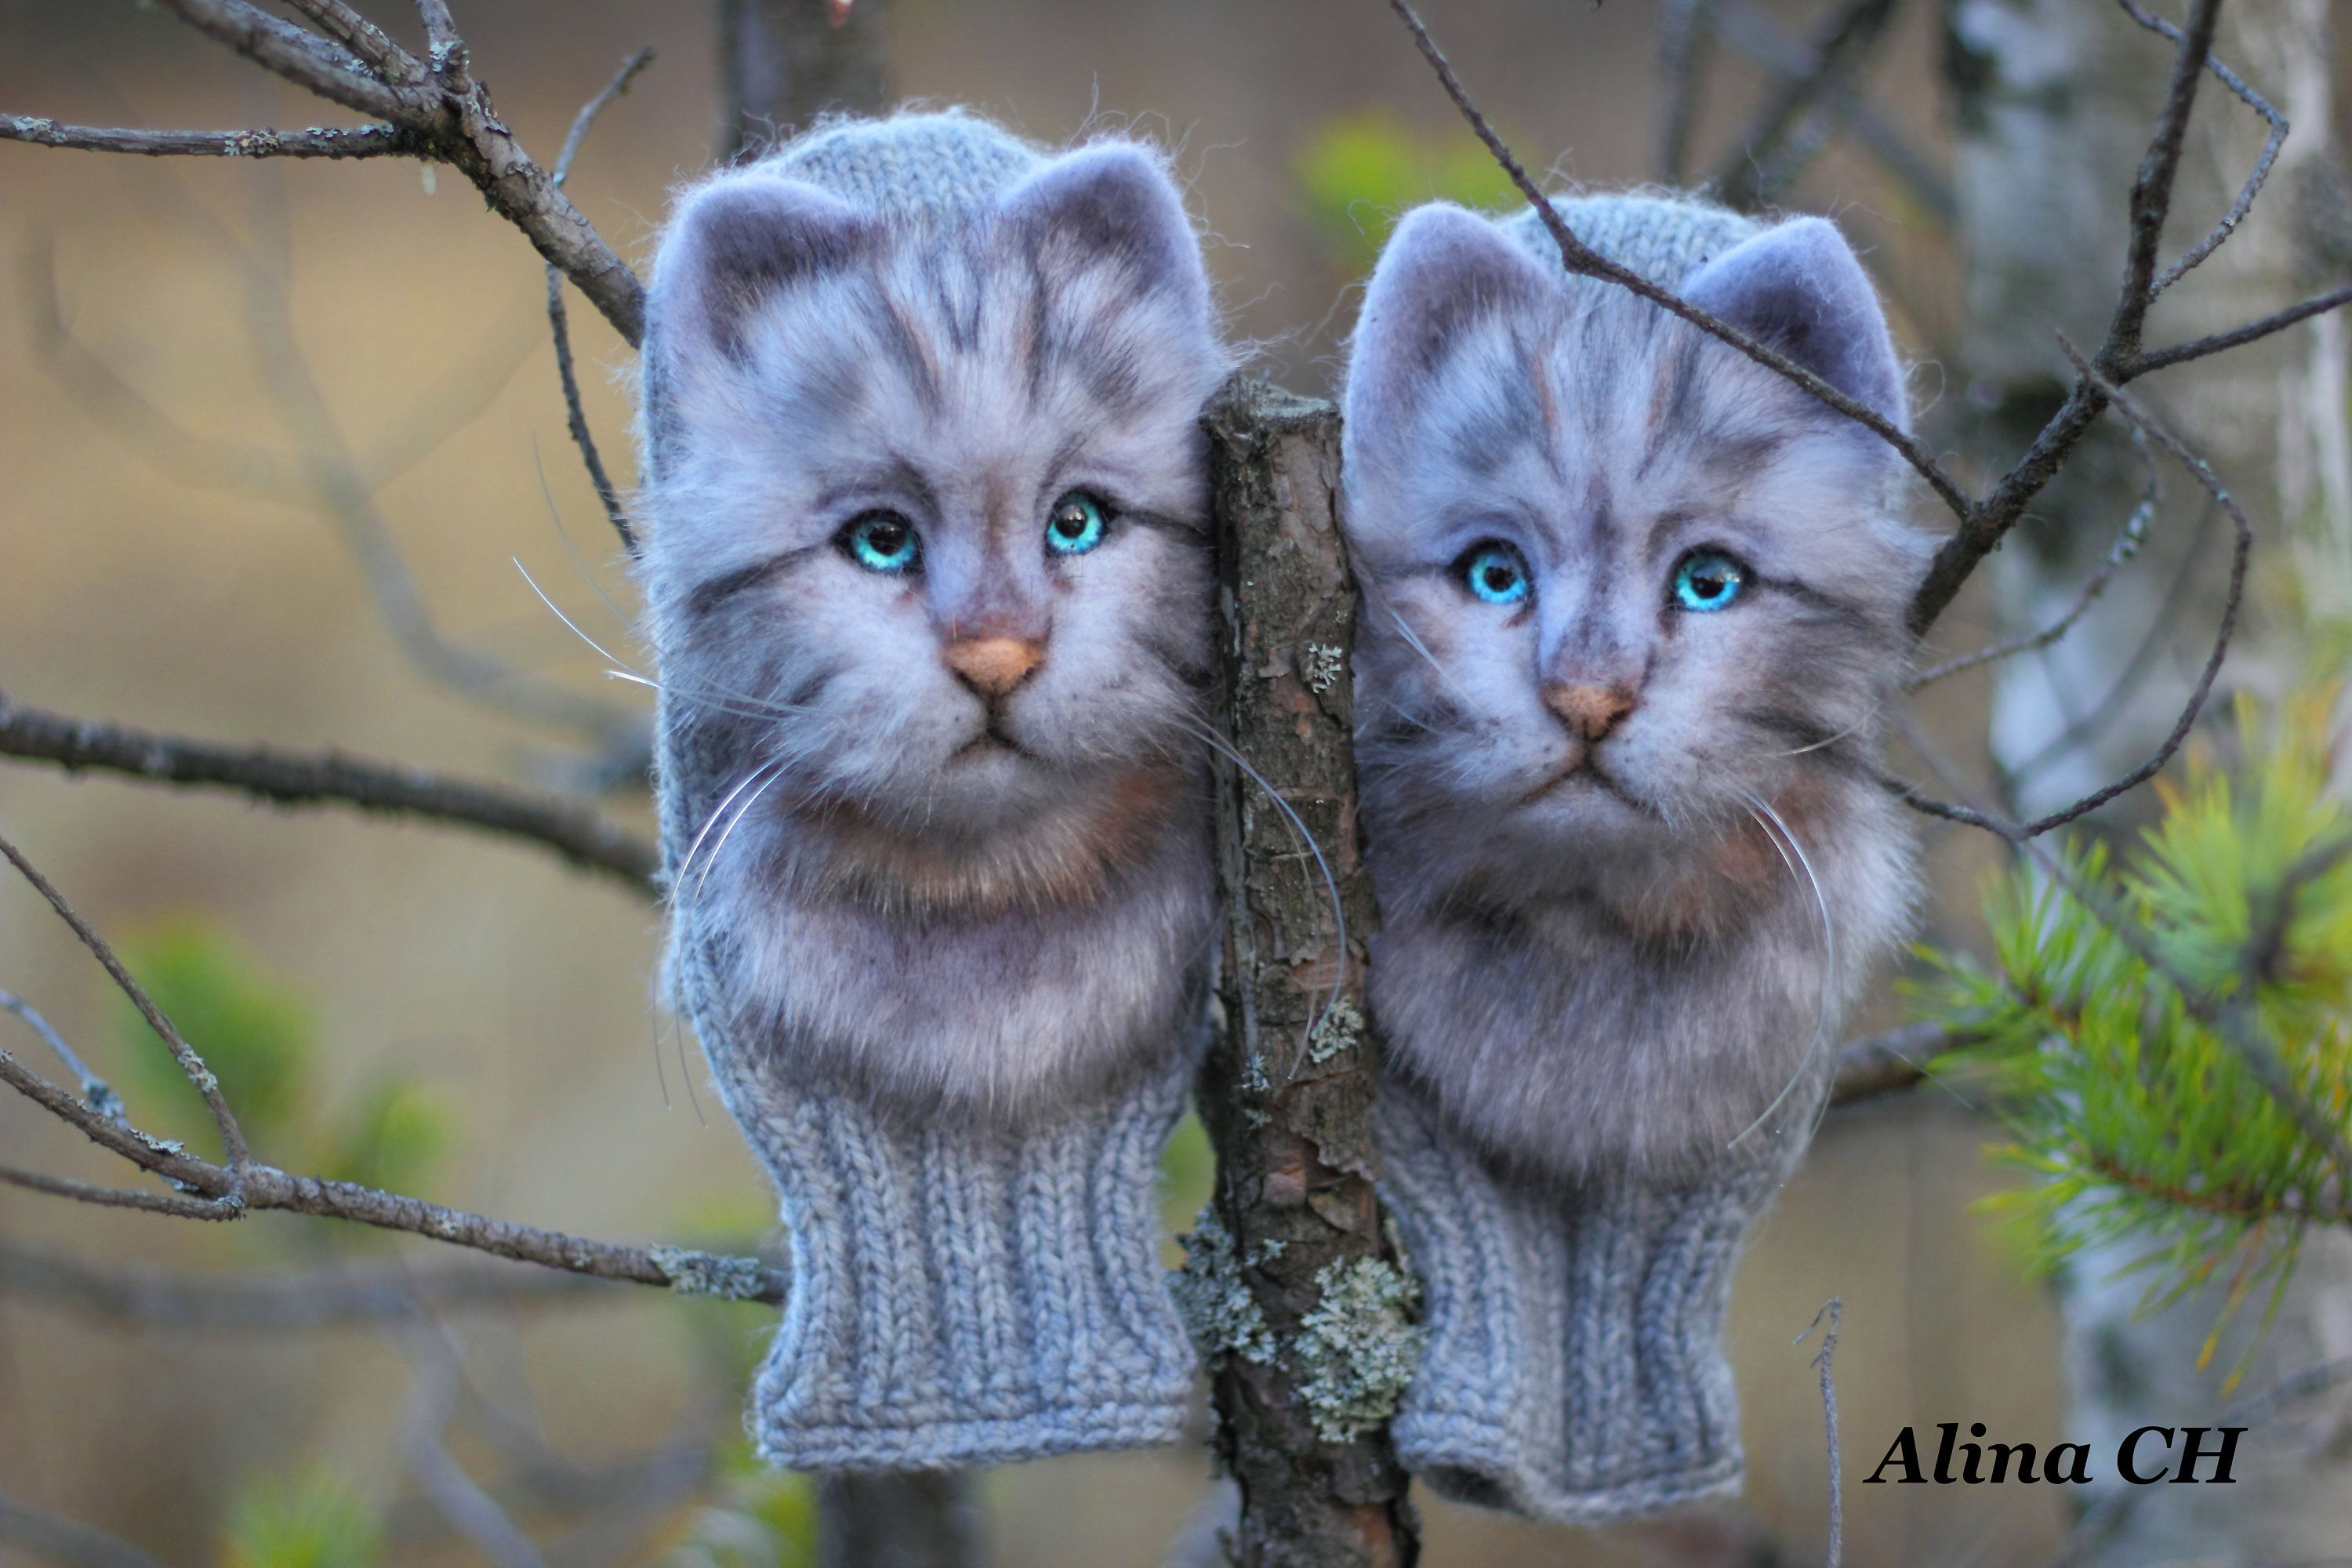 Made To Order Winter Mittens With Kittens From Wool Winter Gloves Women S Mittens Gift To Sister Daughter Han Wool Mittens Winter Mittens Women S Mittens